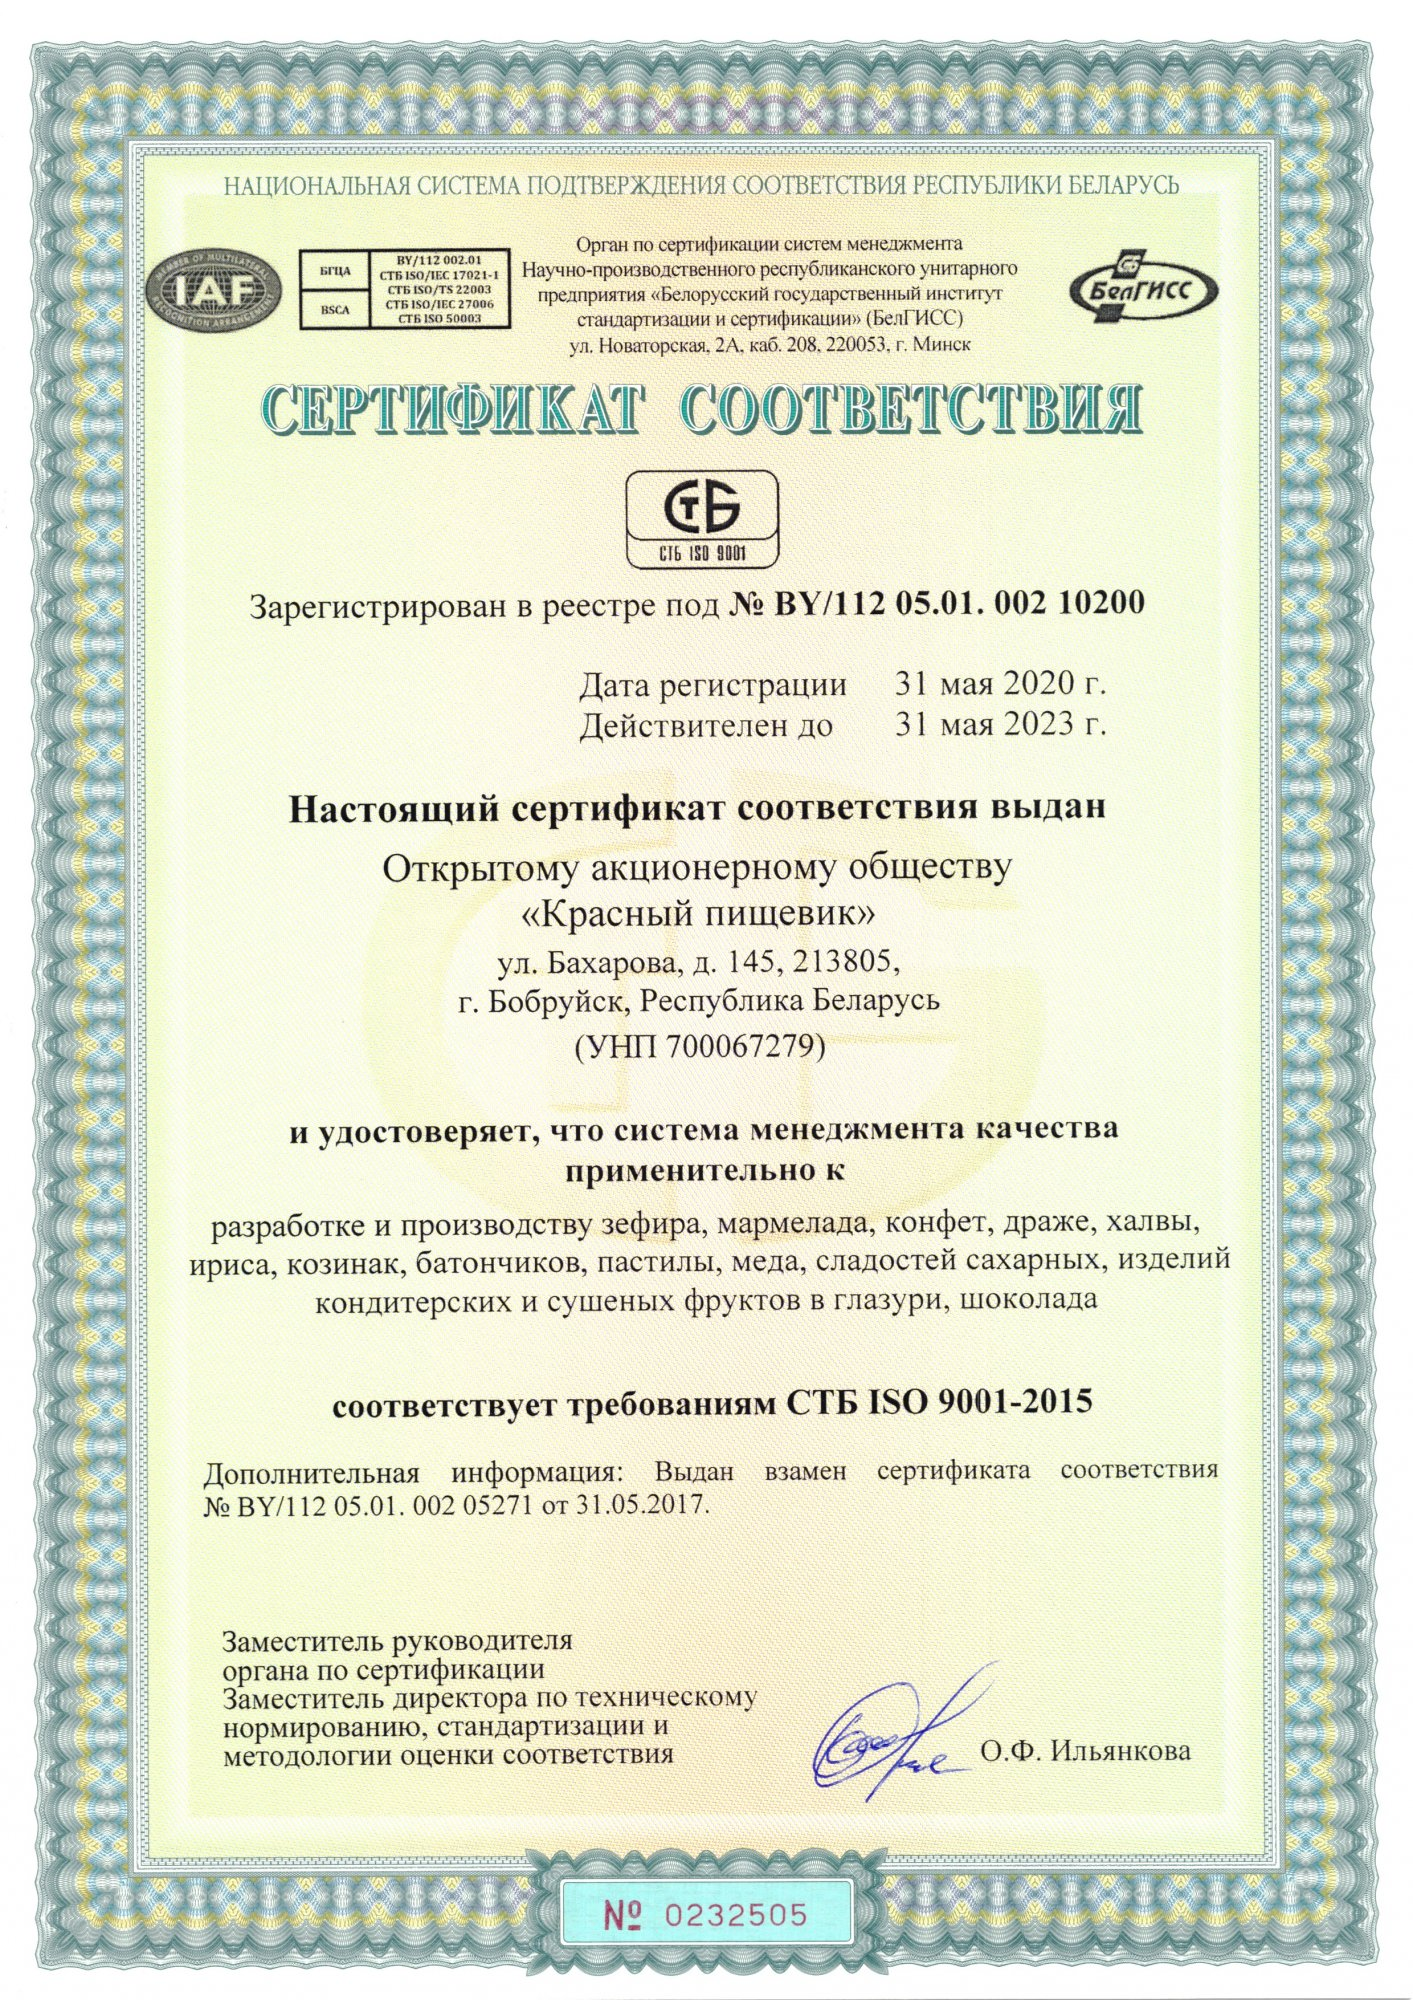 СТБ ISO 9001 - 2015